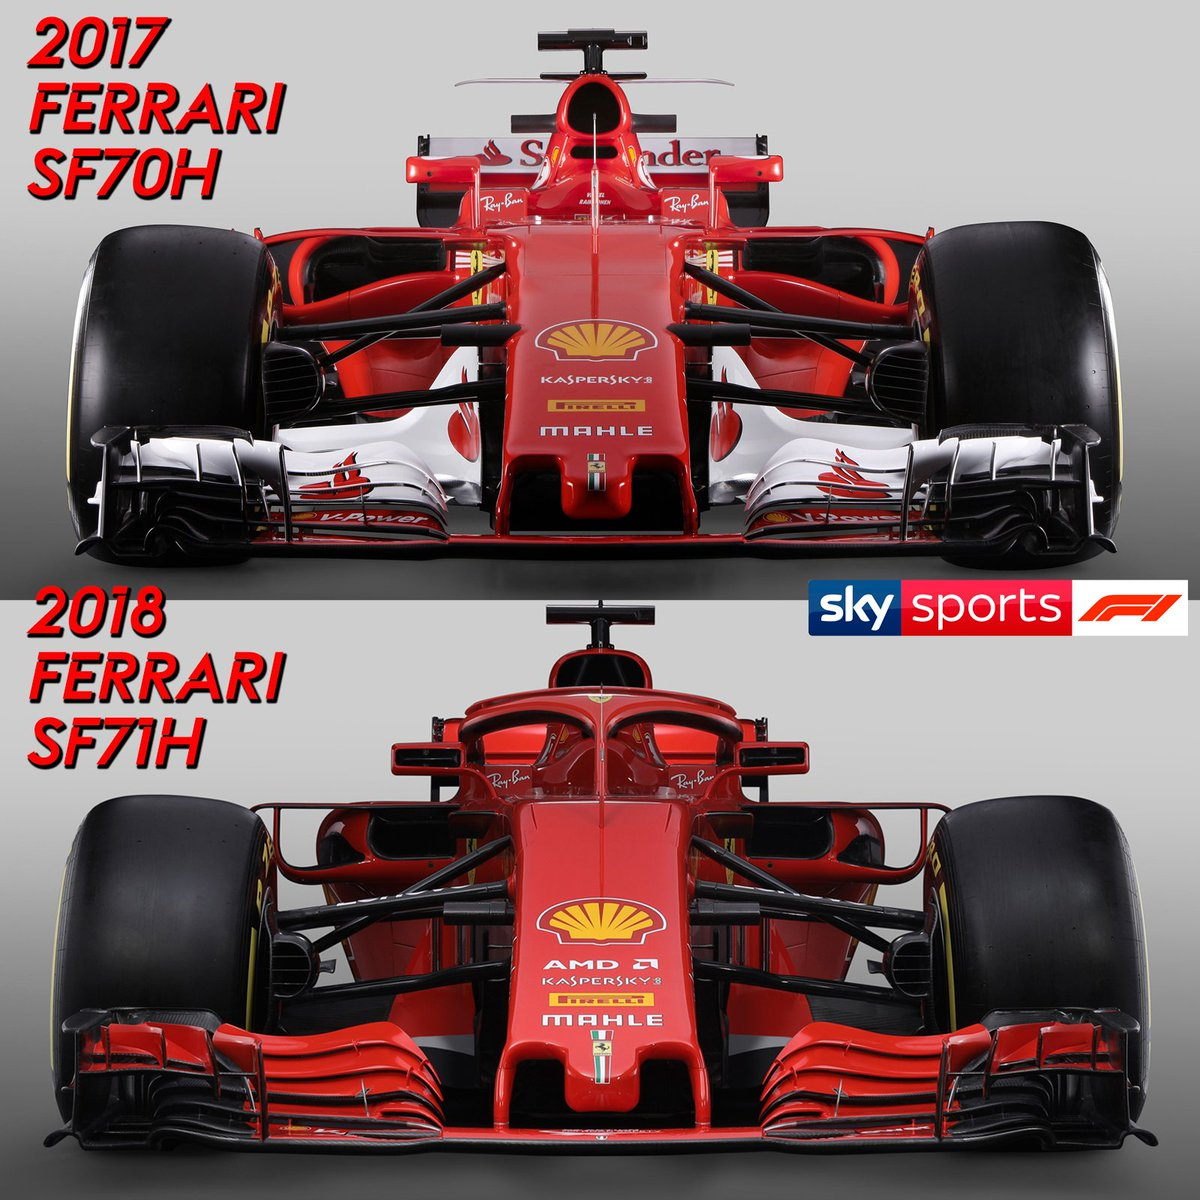 sky sports f1 on twitter the 2017 ferrari sf70h and the 2018 ferrari sf71h compared skyf1. Black Bedroom Furniture Sets. Home Design Ideas